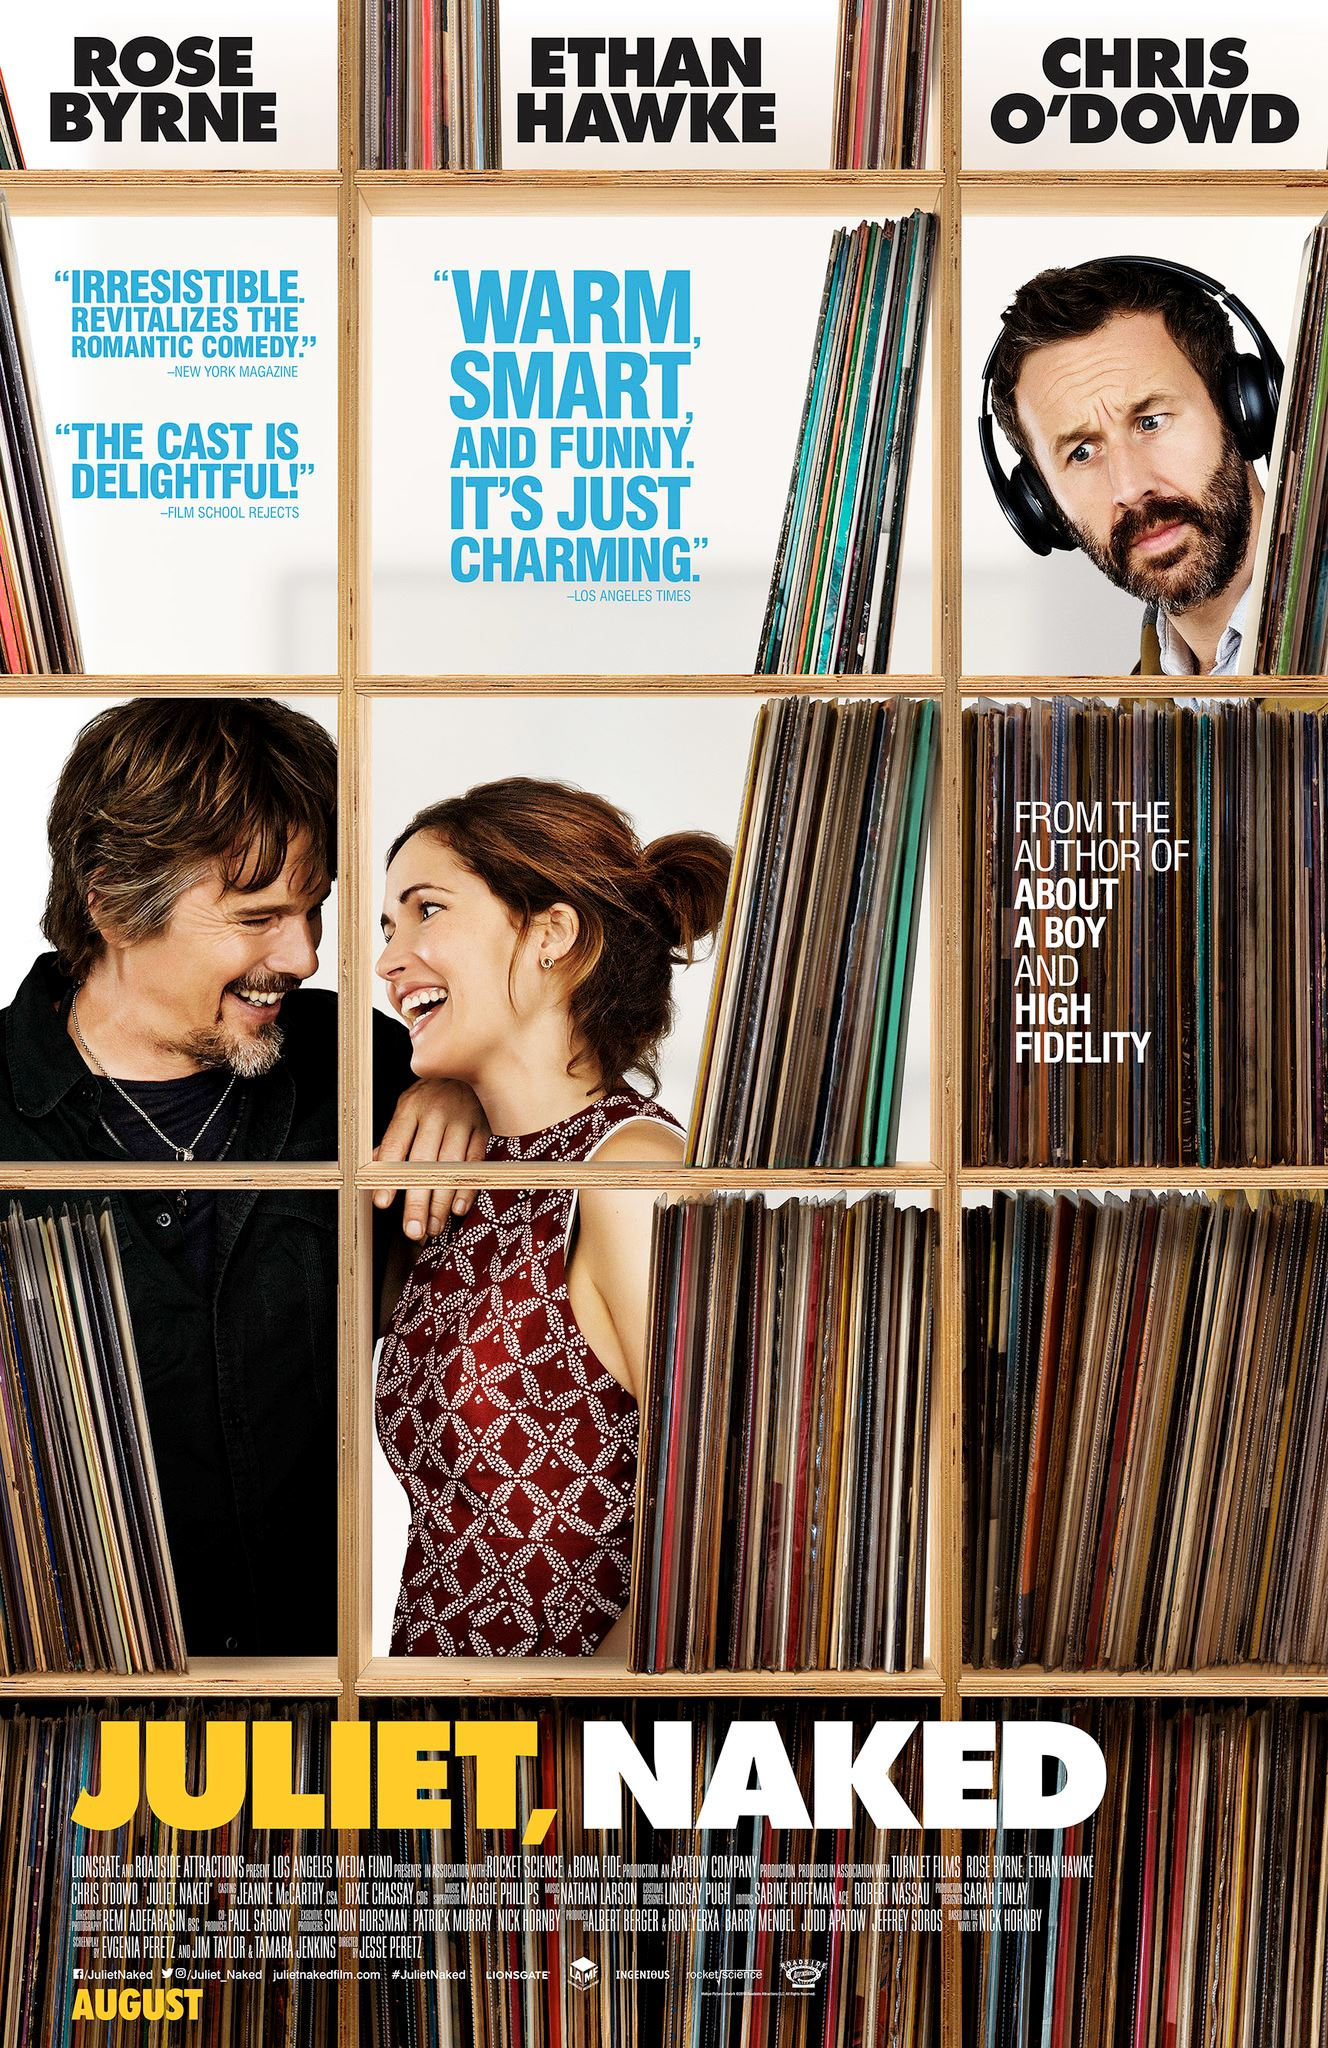 Movie poster of couple behind bookshelf with man wearing headphones looking from right corner